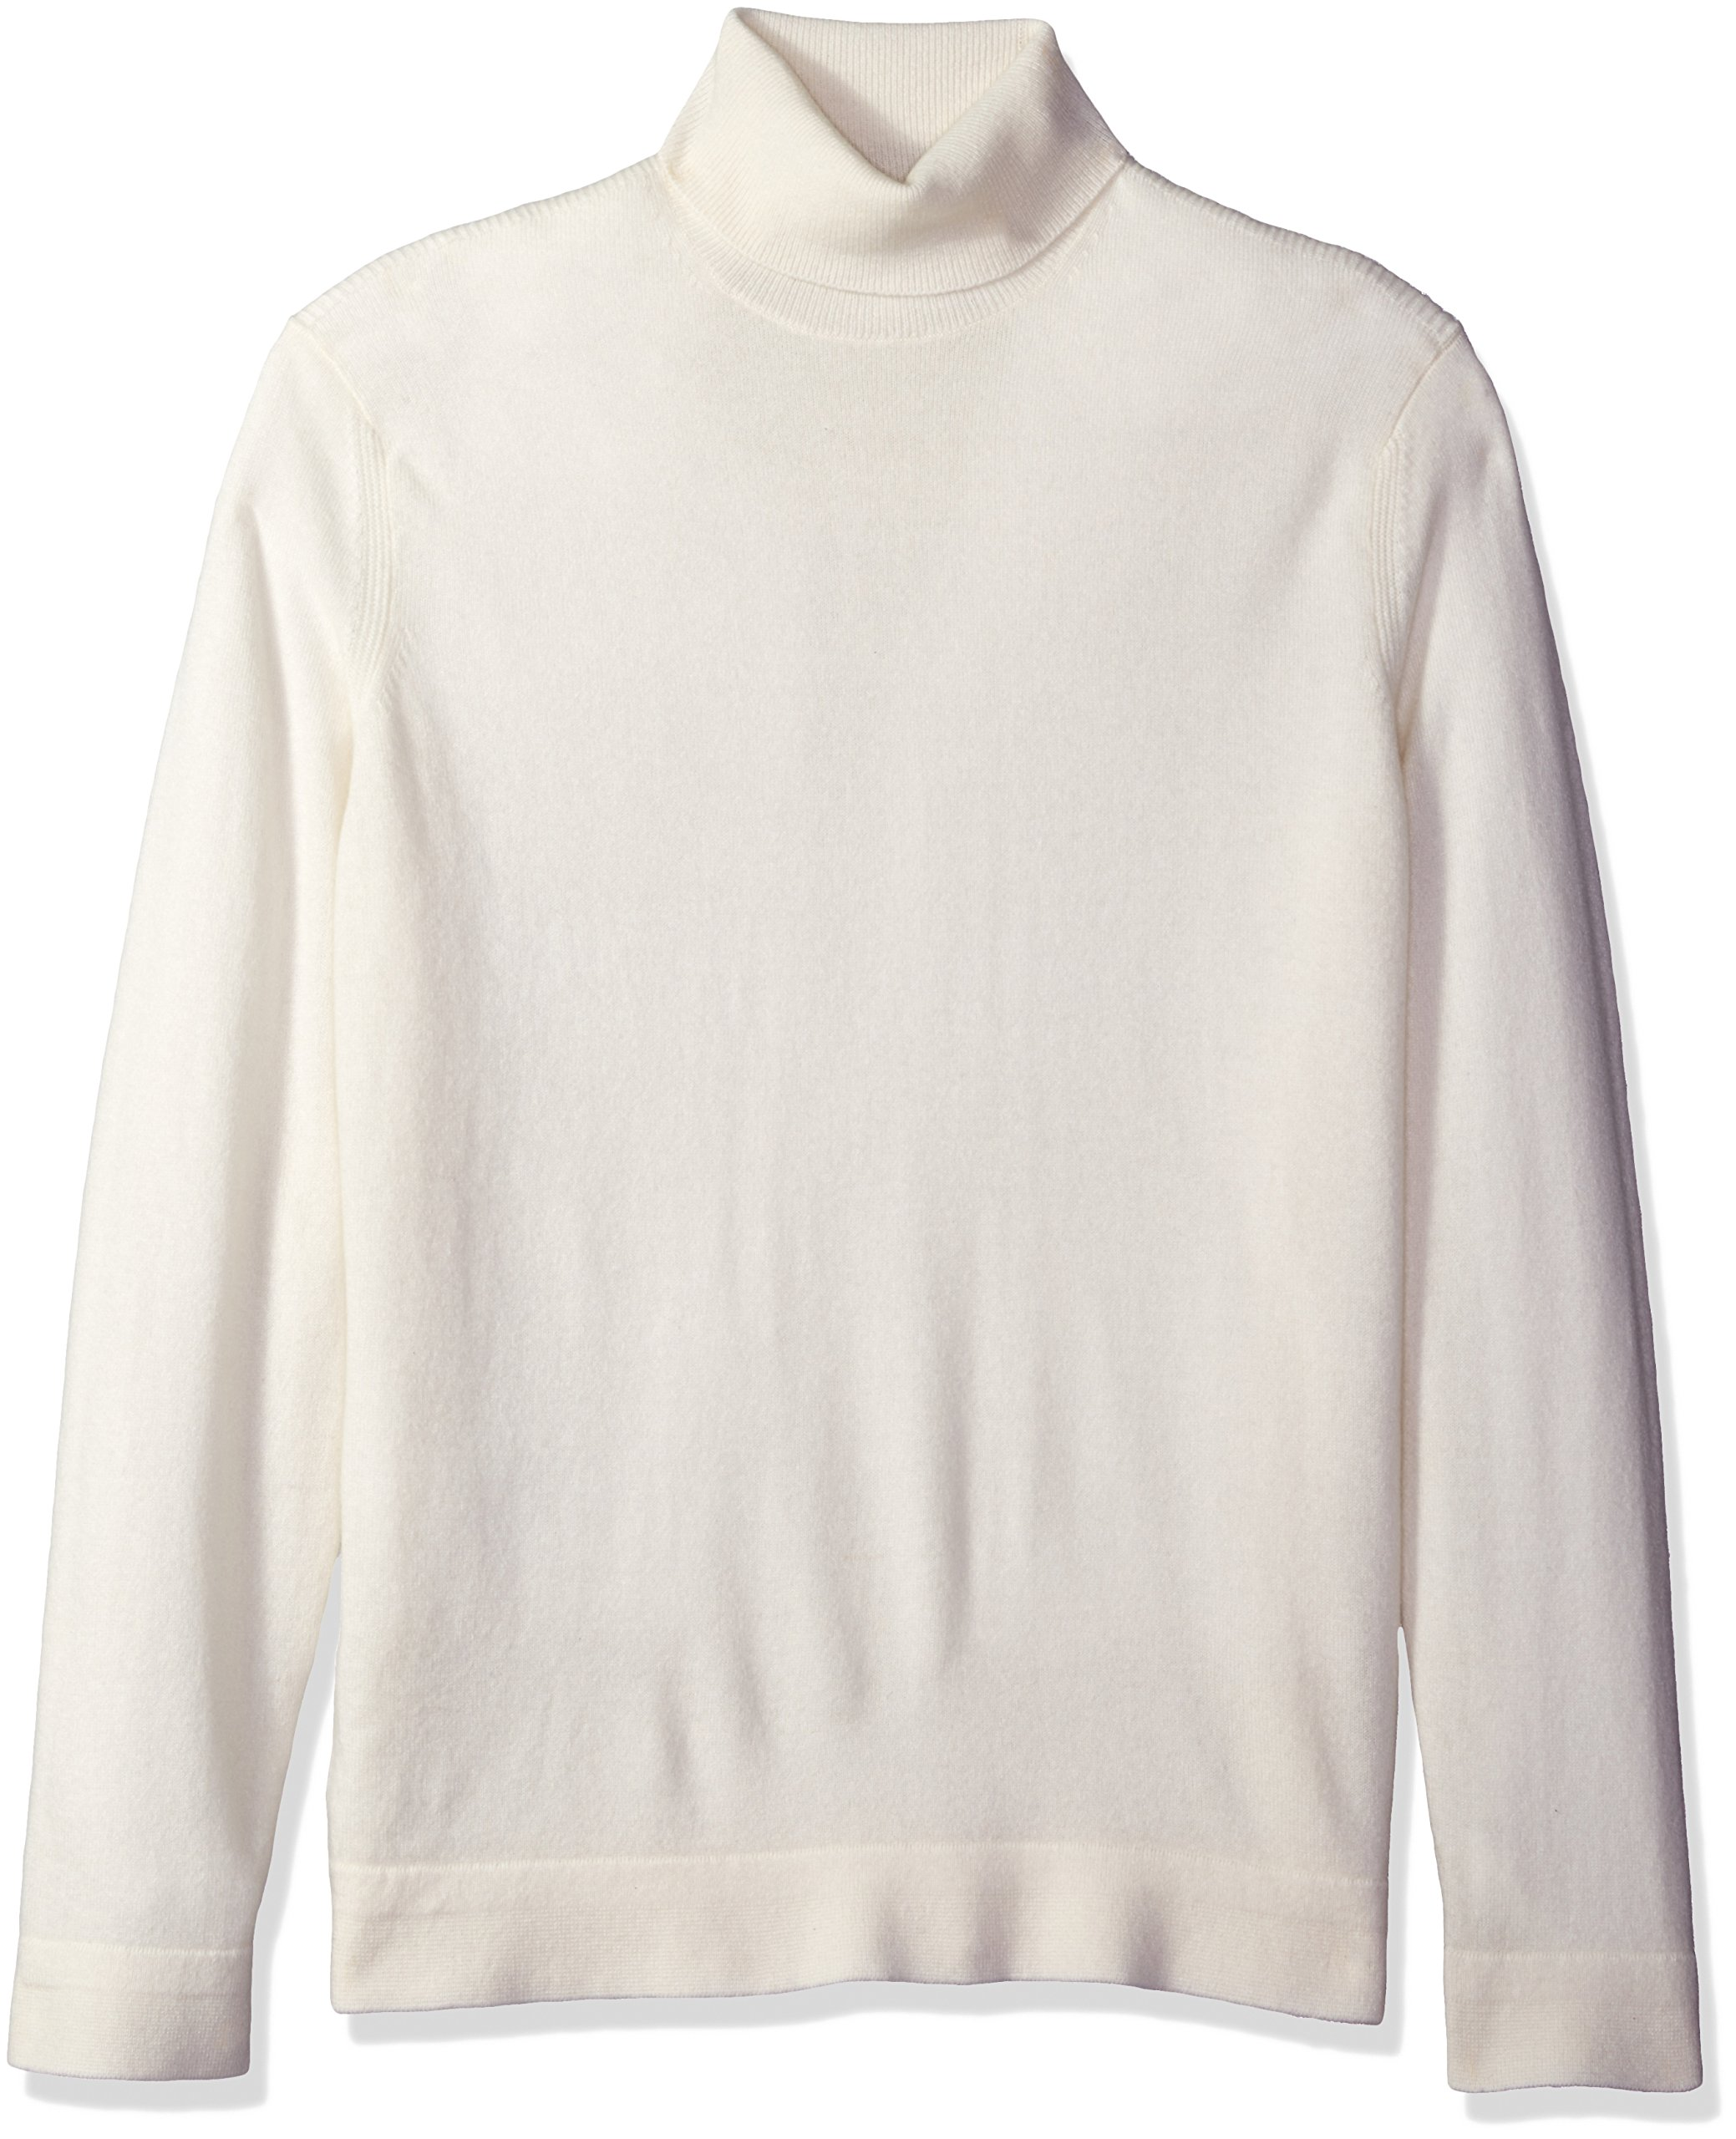 Theory Men's Donners Cashmere Turtleneck, Mists, Large